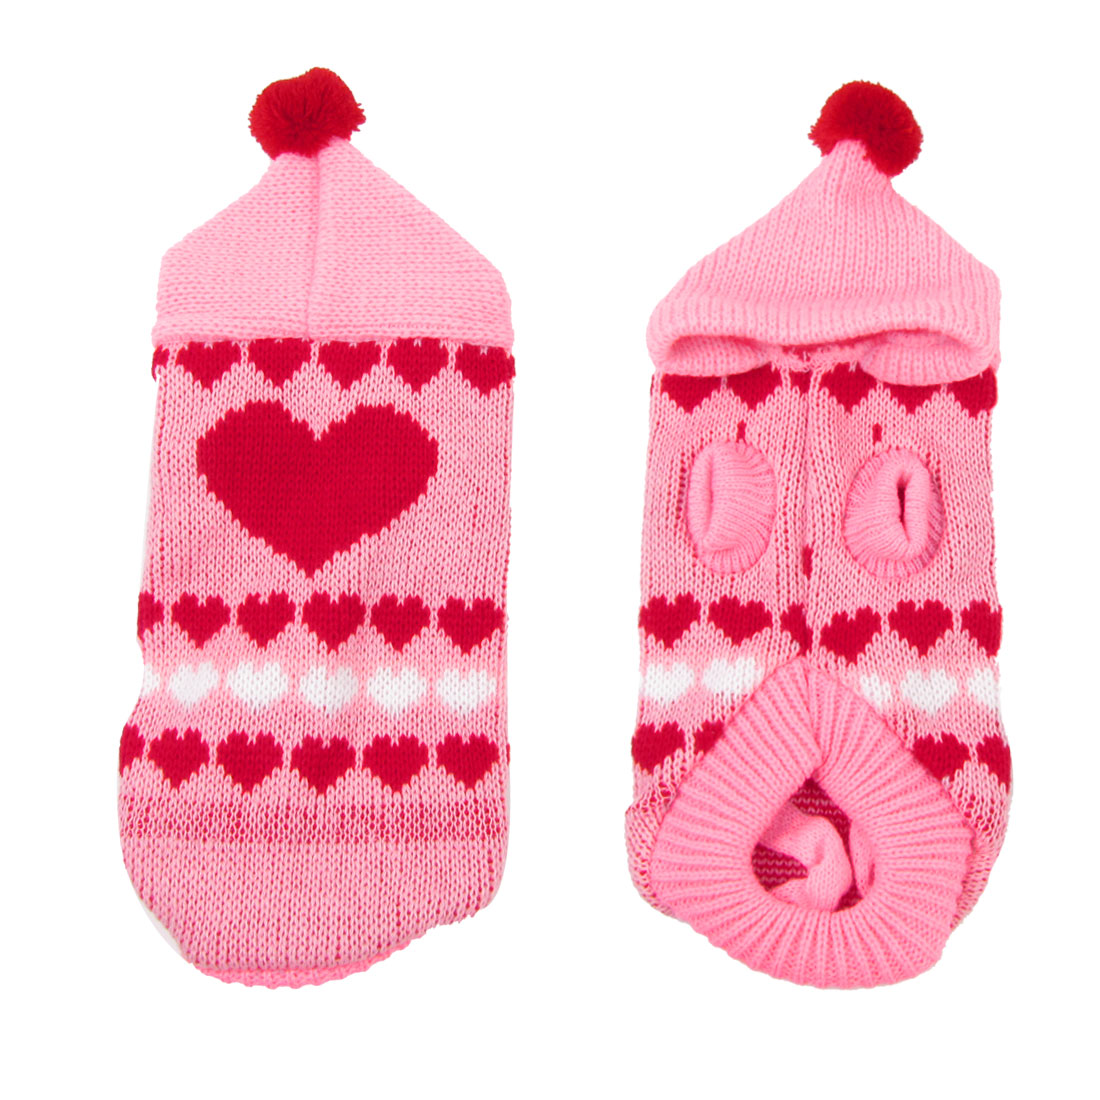 Warm Hoodie Heart Print Knitted Chihuaha Dog Sweater Clothes Pink XS